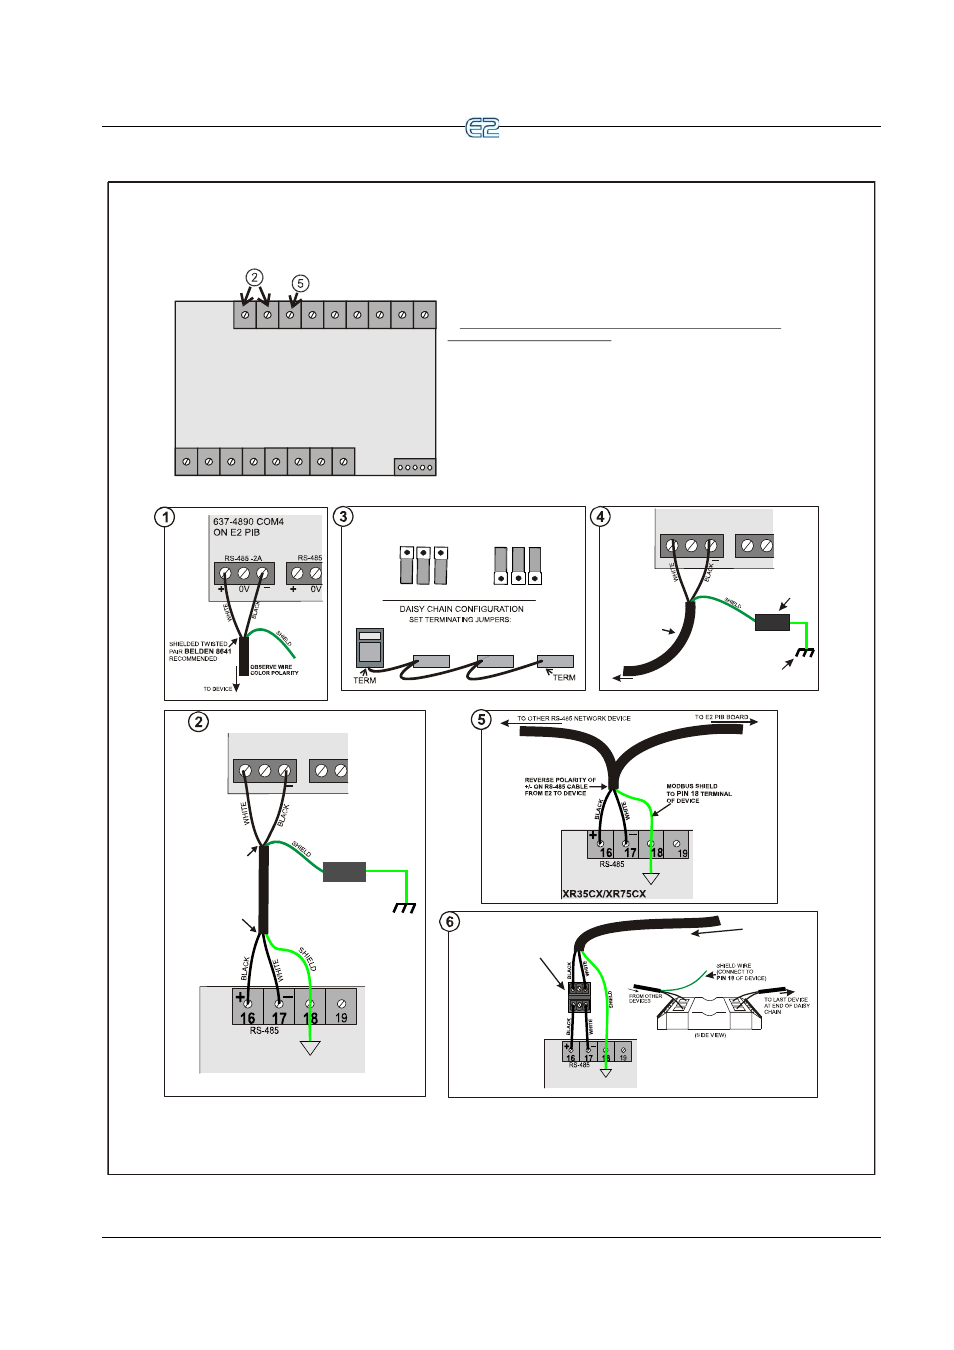 Rs 485 I O Or Modbus Net Xr35cx Xr75cx Device Ect The Belden Wiring Diagram Rs485 Network And Hardware Setup Emerson E2 User Manual Page 81 273